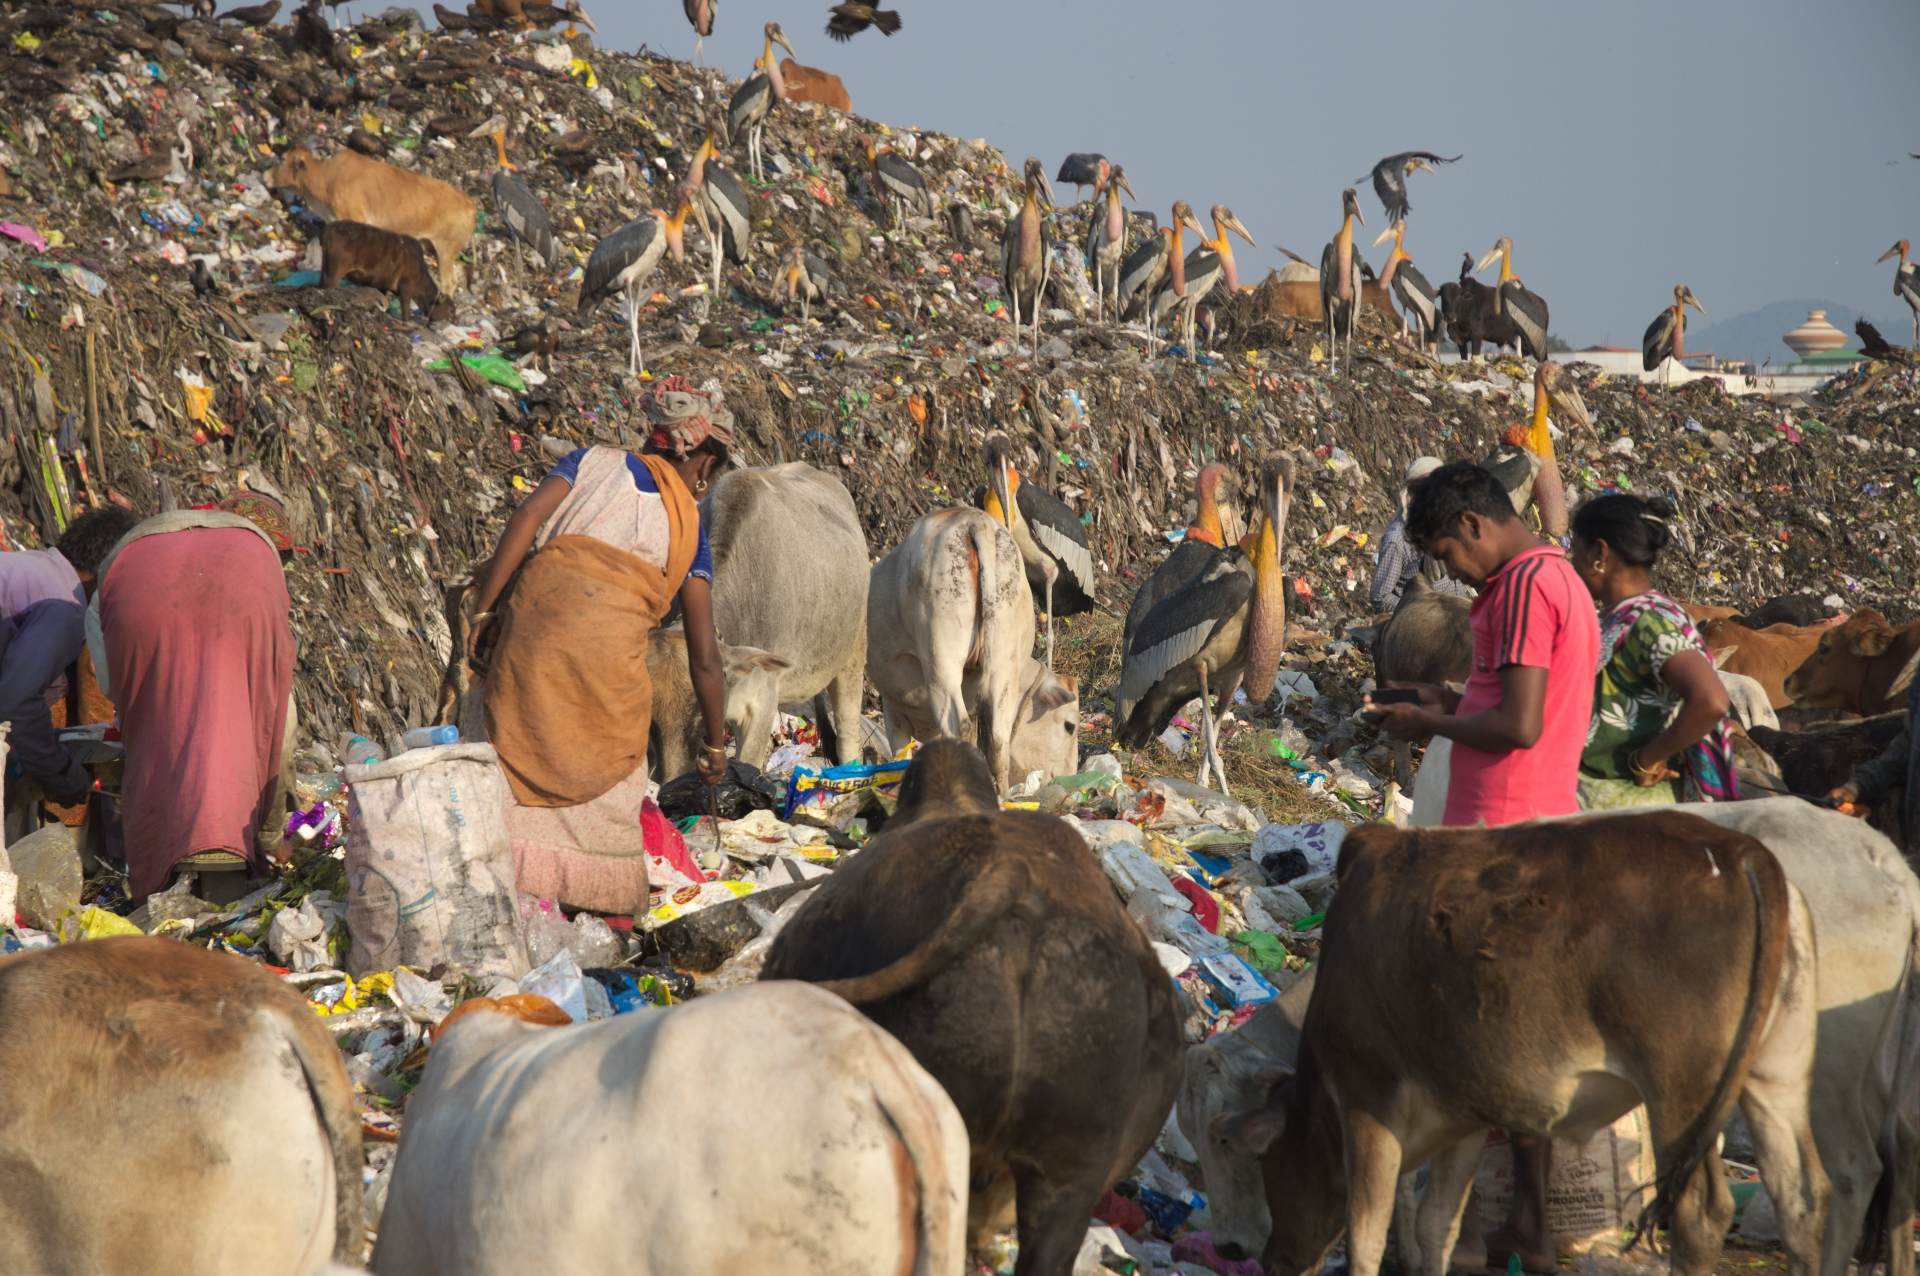 Greater adjutant storks work shoulder-to-shoulder with ragpickers at the landfill site. The storks pick out food, while ragpickers search for plastic and other recyclables in the mixed waste. Photo: Soumya Prasad